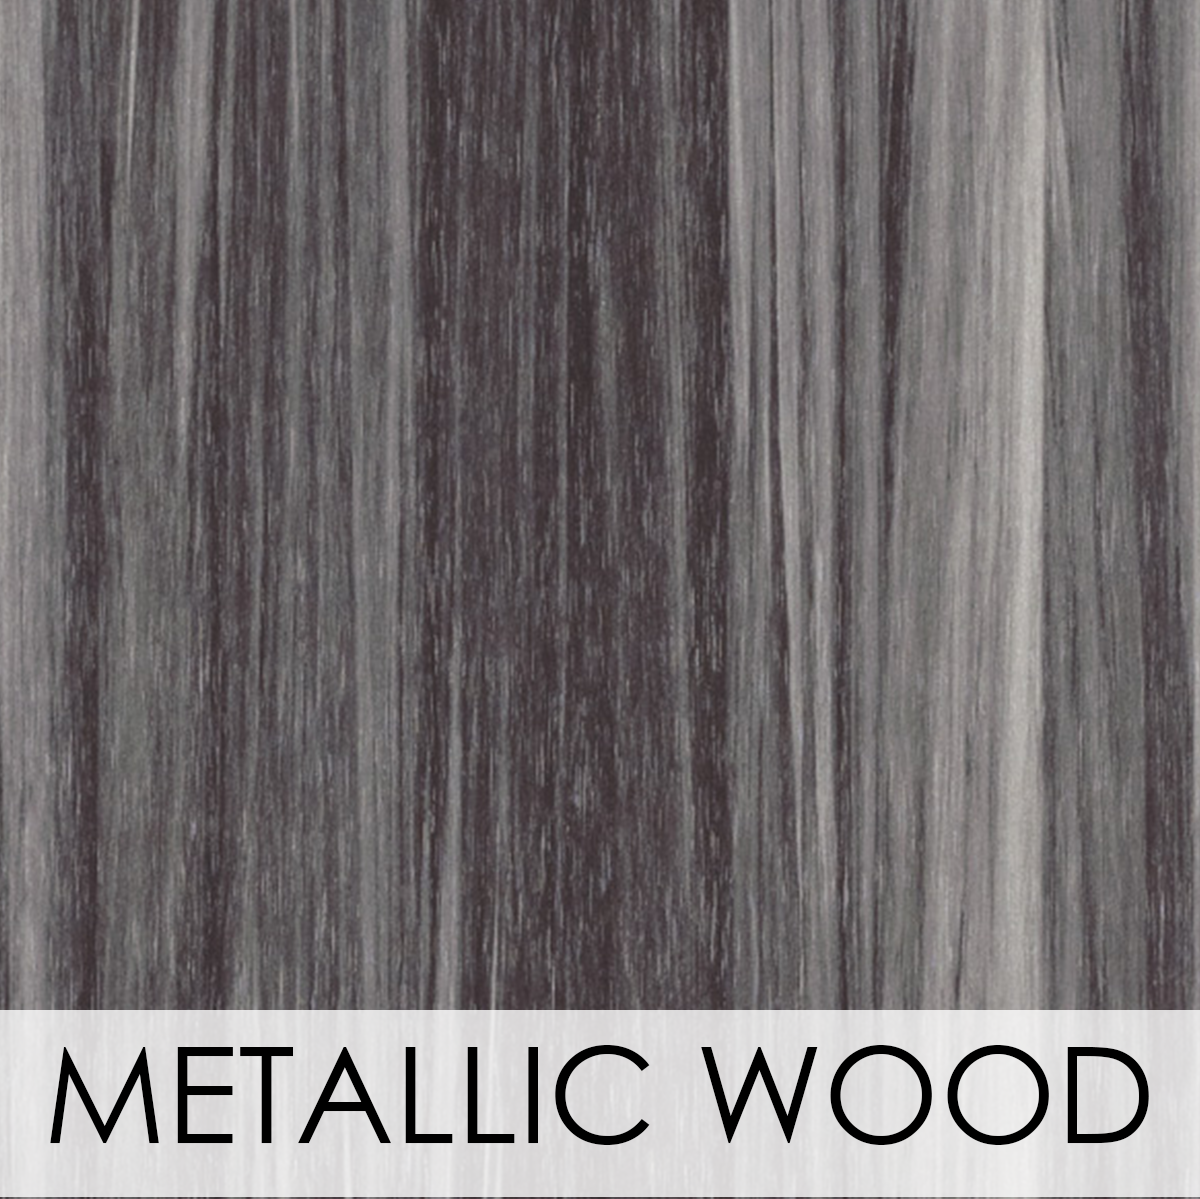 3M DI-NOC Architectural Finishes, Metallic Wood